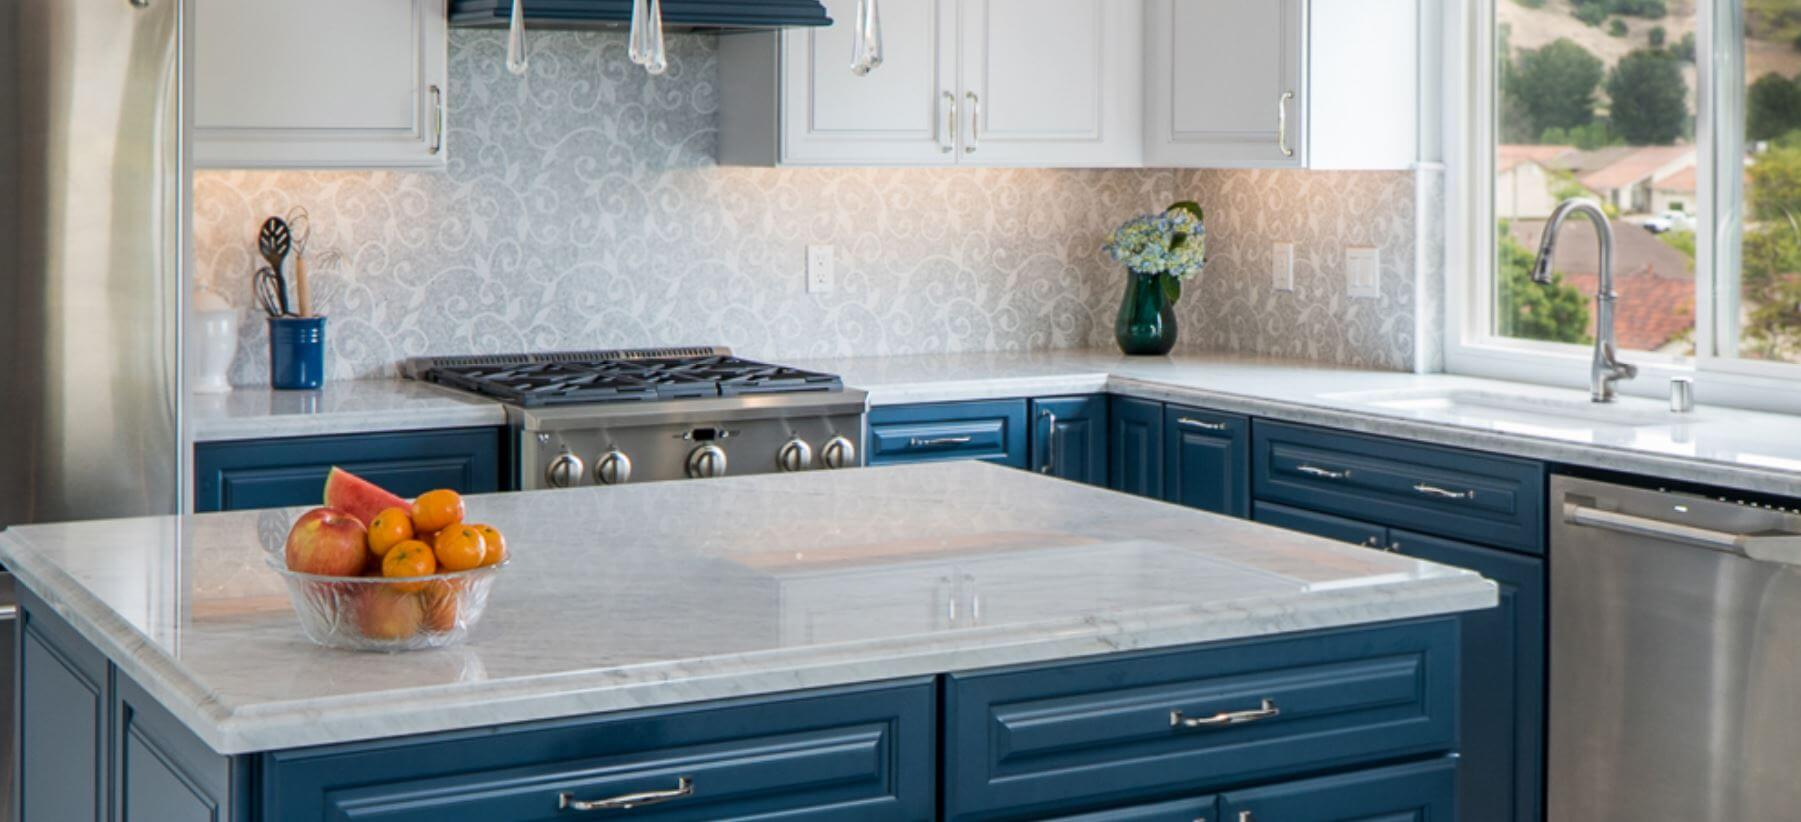 Marble countertops in kitchen remodel